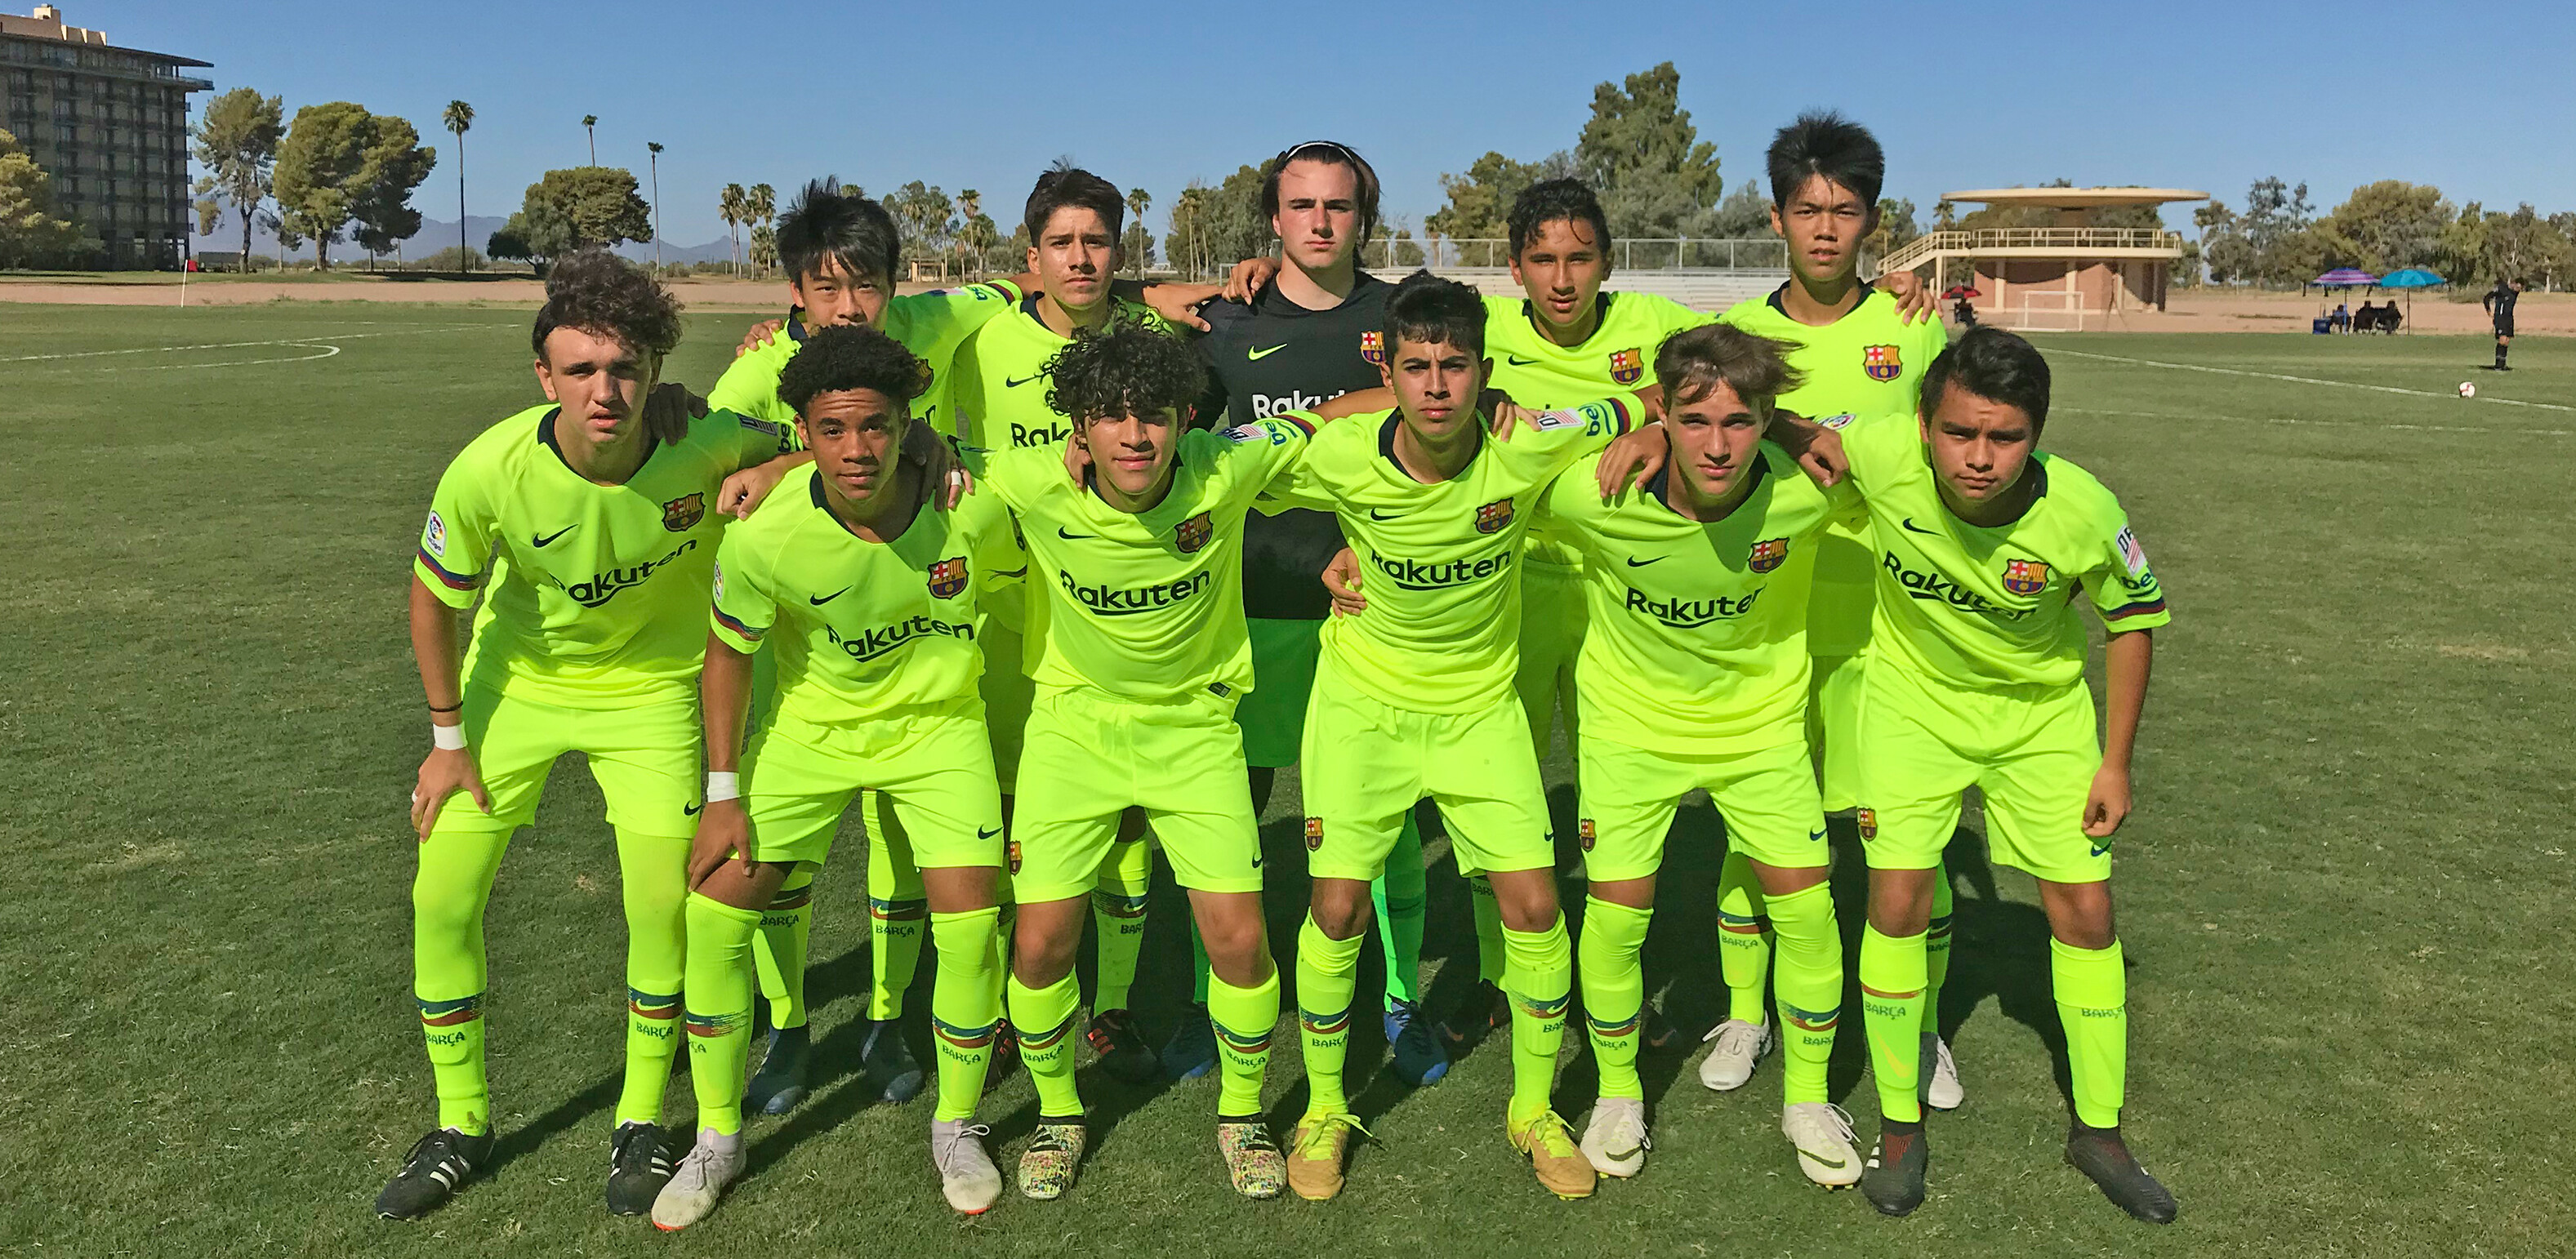 Barca Residency Academy Starting 11 vs. FC Golden State